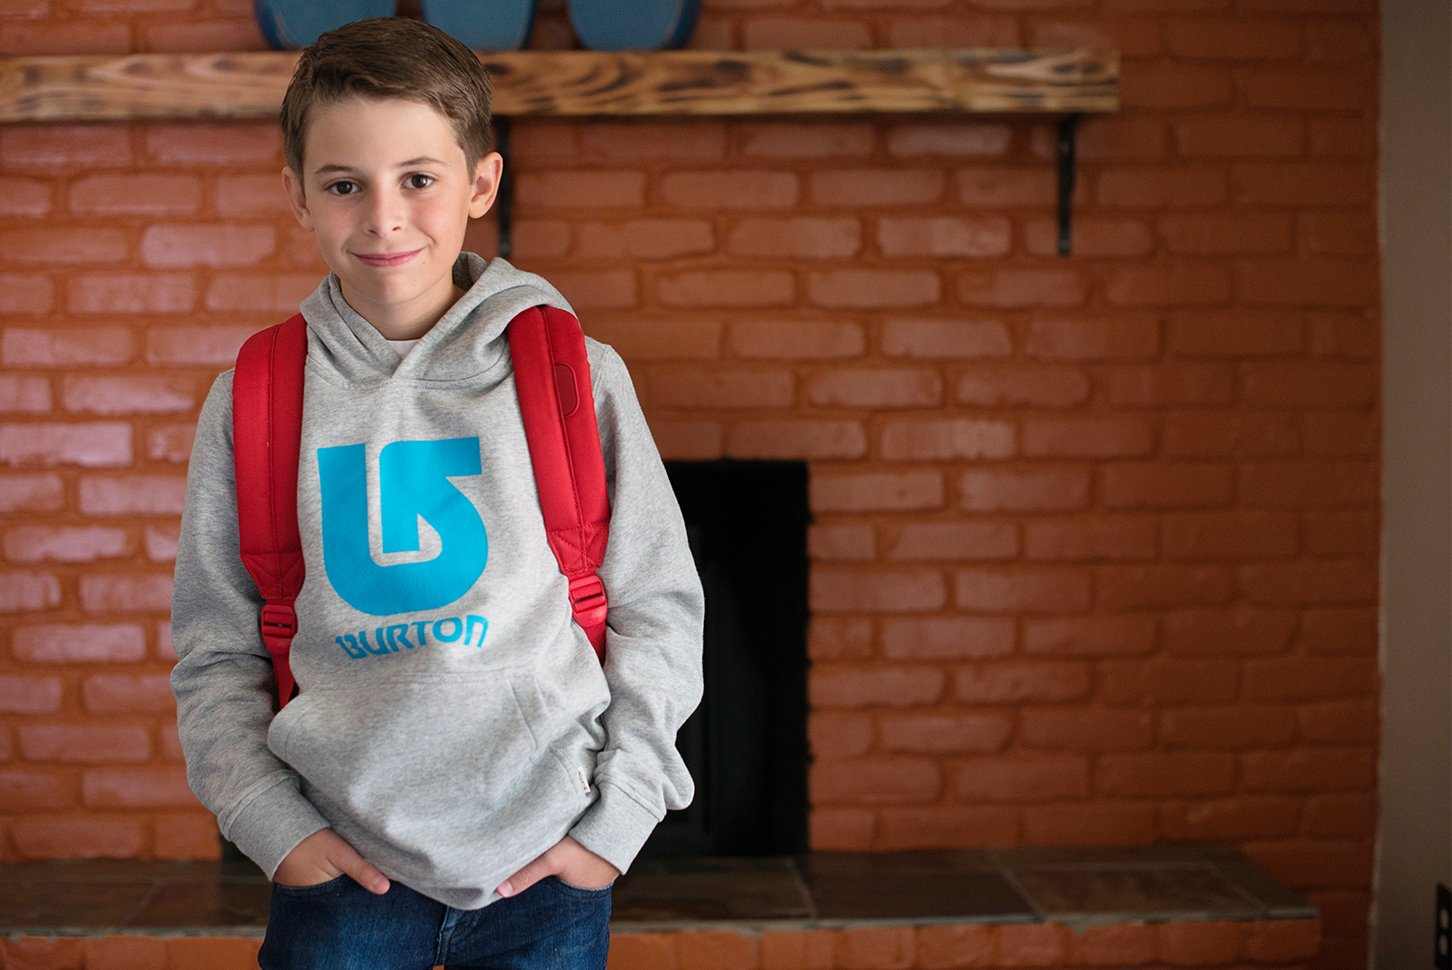 Boy's Outfit With Burton Sweatshirt, Jeans And Sneakers